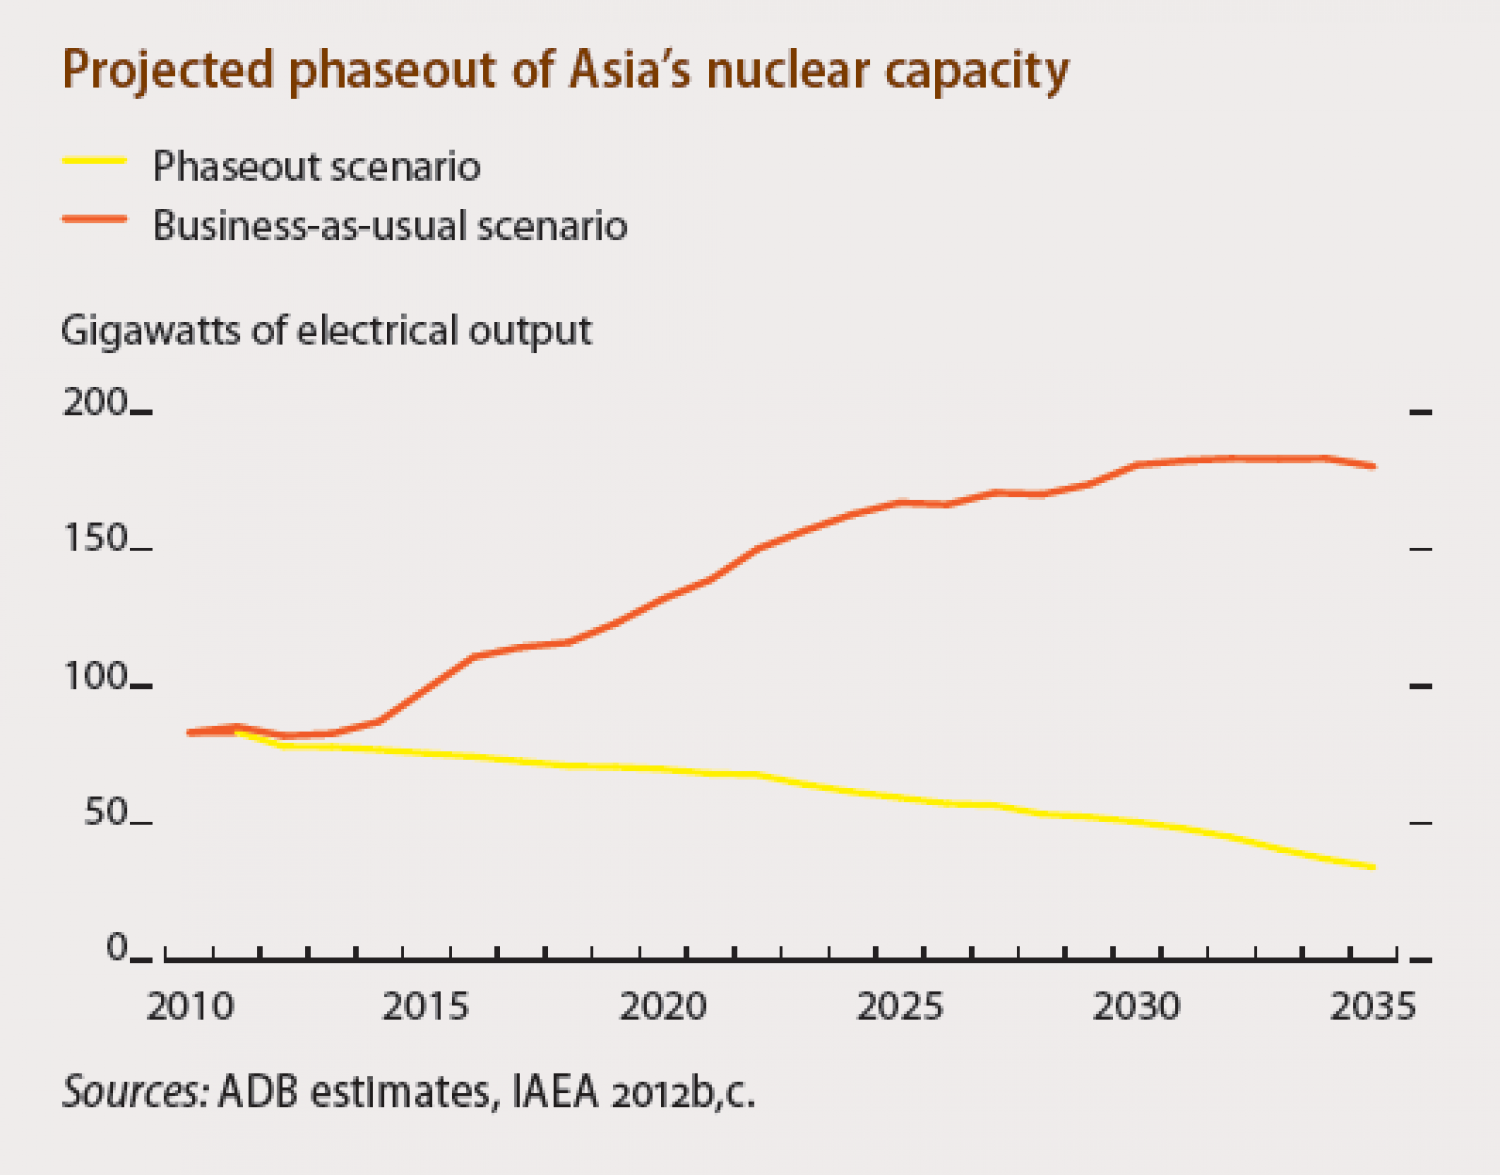 Projected phaseout of Asia's nuclear capacity Infographic